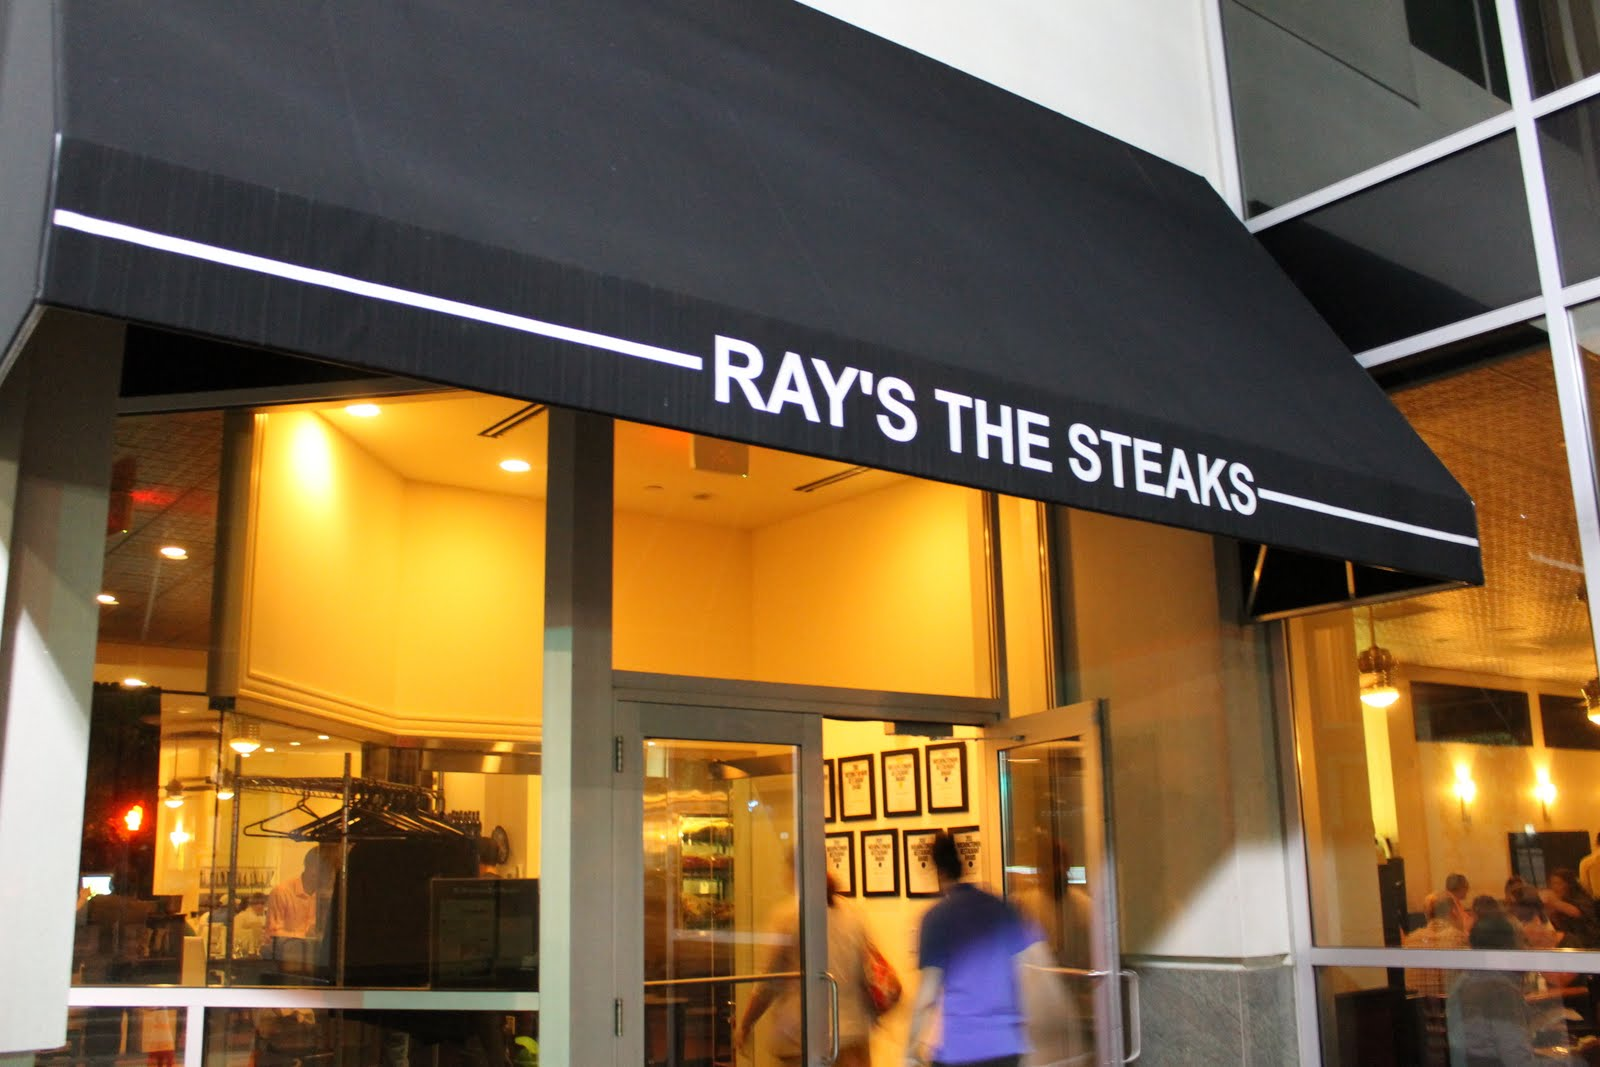 """Exterior photo of Ray's Steaks restaurant in Arlington, VA. Rays the Steaks, 2300 Wilson Boulevard, makes a return from its 2013 appearance on the Washingtonian's """"Very Best"""" list.  Seven total Arlington restaurants made the annual 100 Very Best Restaurants list of 2014. Joining Rays the Steaks, was Liam LaCivita's, Lyon Hall, Liberty Tavern and Ray's to the Third. Ray's to the Third just recently opened its doors in Rosslyn just a few short blocks away from Rays the Steaks, which is located at 2300 Wilson Boulevard.  According to the magazine, the consistency of Rays the Steaks kitchen and quality of the beef hasn't changed from last year's award-winning form. Their pepper-crusted filet mignon and mammoth cowboy-cut rib eye appear to be a guaranteed treat for 2015."""